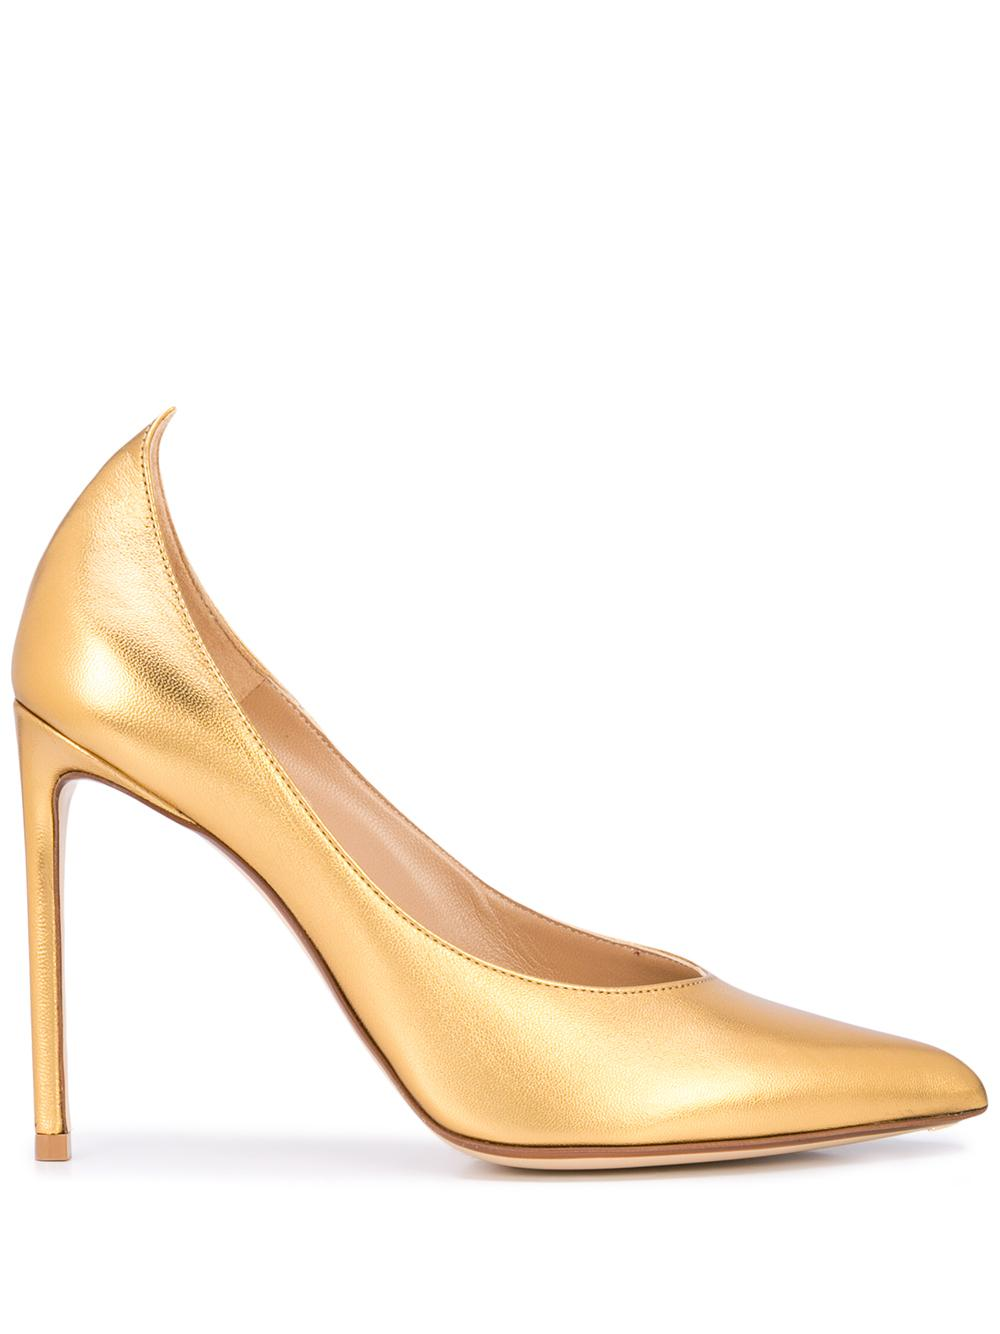 Laminated Leather 105mm Peak Heel Pump Item # R1P533-256